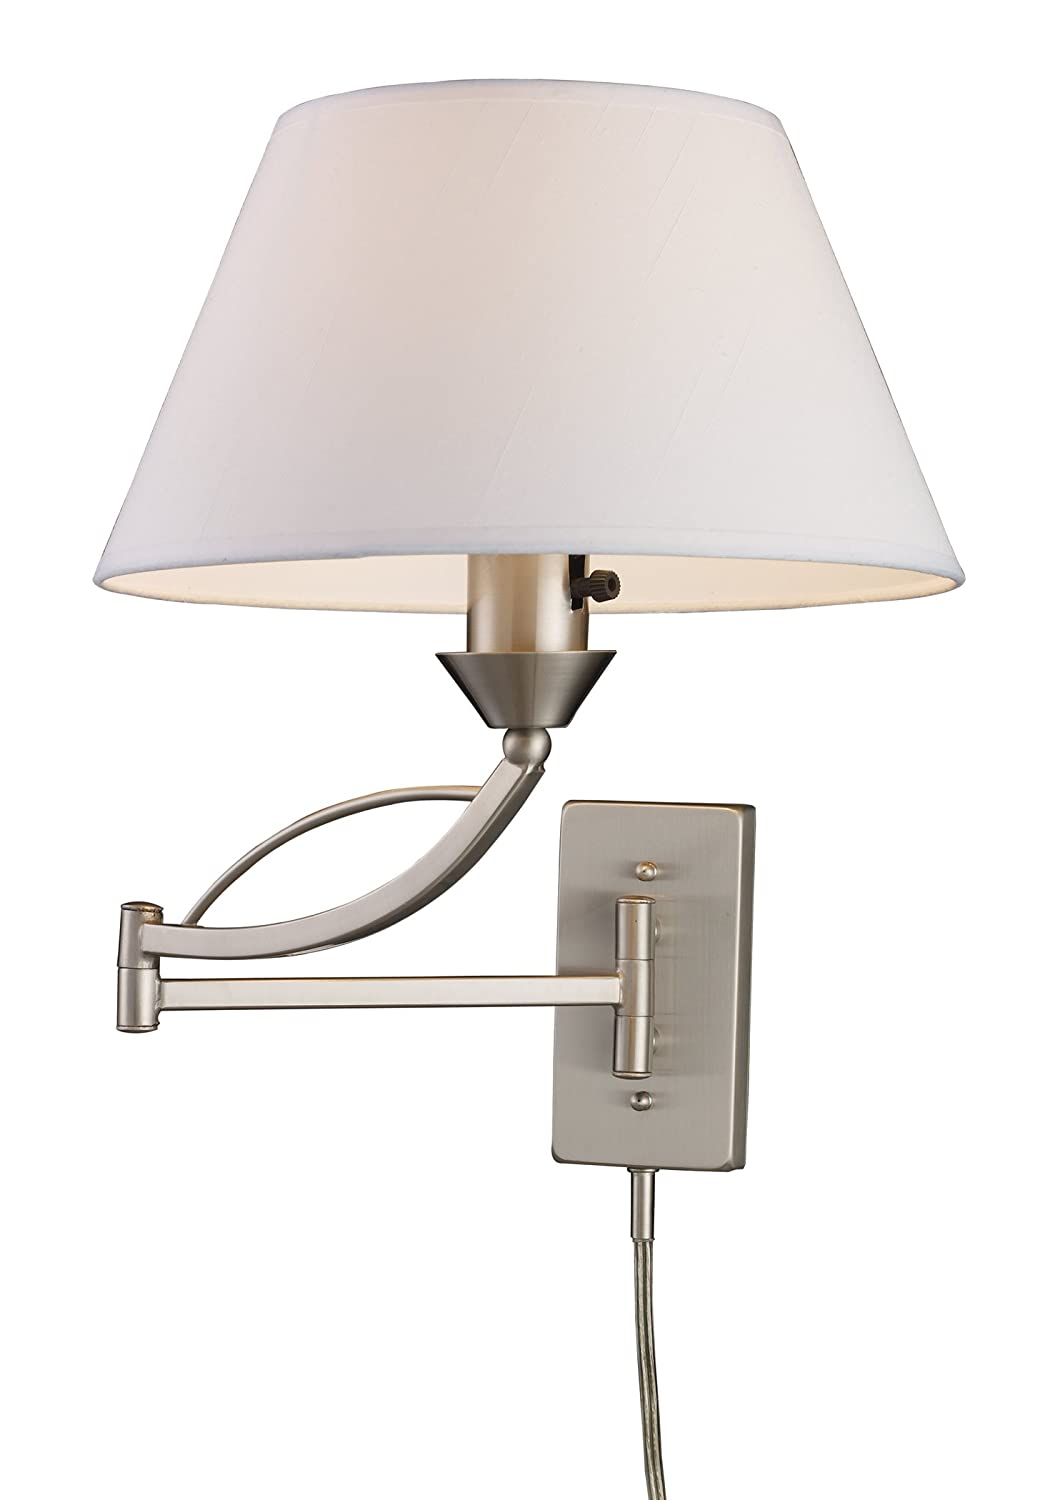 Elk 17016/1 Elysburg 1-Light Swing arm Sconce In Satin Nickel - Wall Sconces - Amazon.com  sc 1 st  Amazon.com & Elk 17016/1 Elysburg 1-Light Swing arm Sconce In Satin Nickel ... azcodes.com